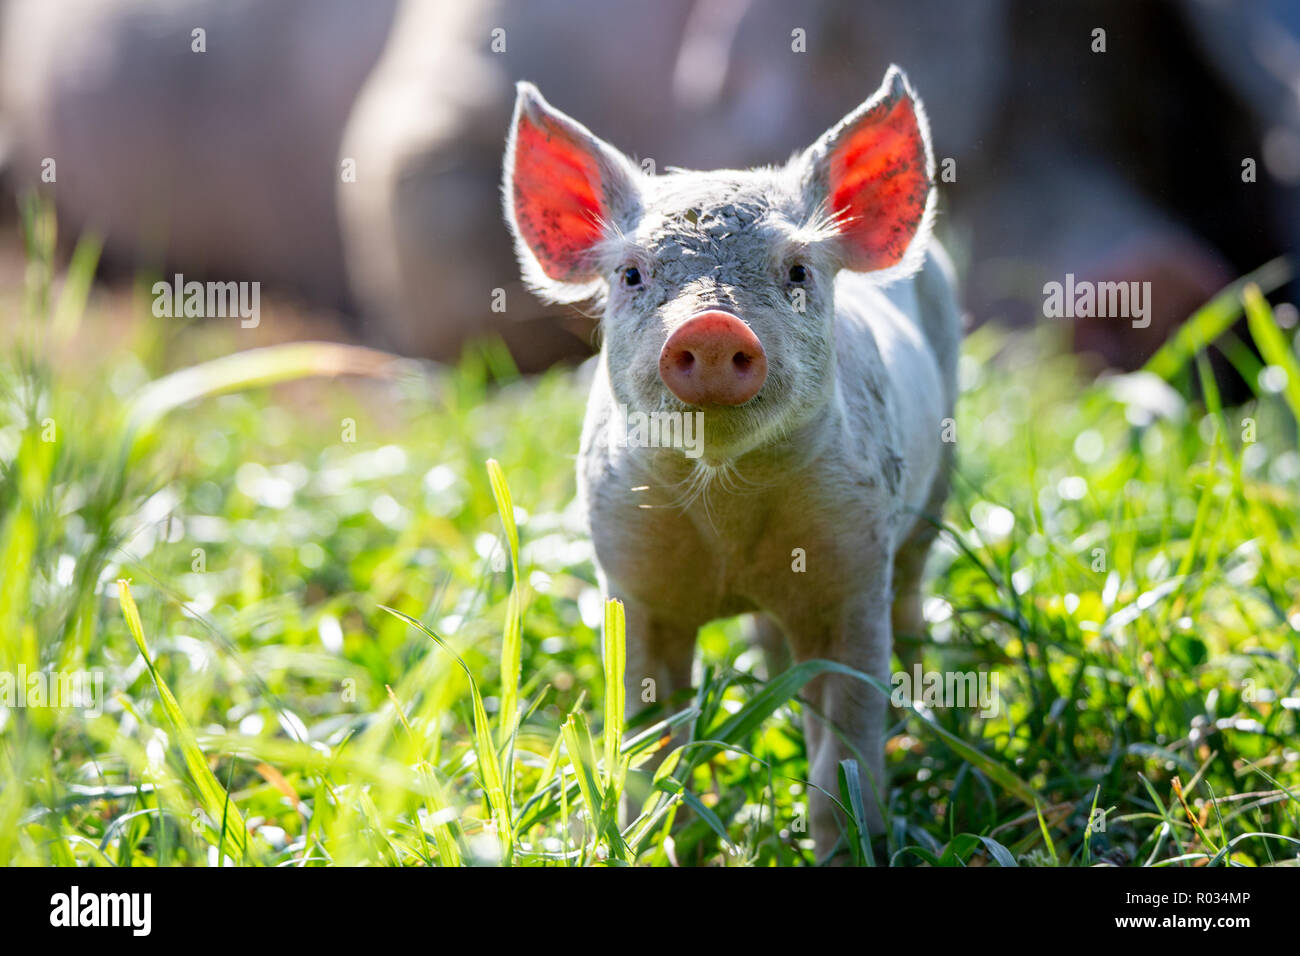 A curious little piglet has the sun behind him, lighting up his ears, in a field on a free range pig farm in New Zealand - Stock Image